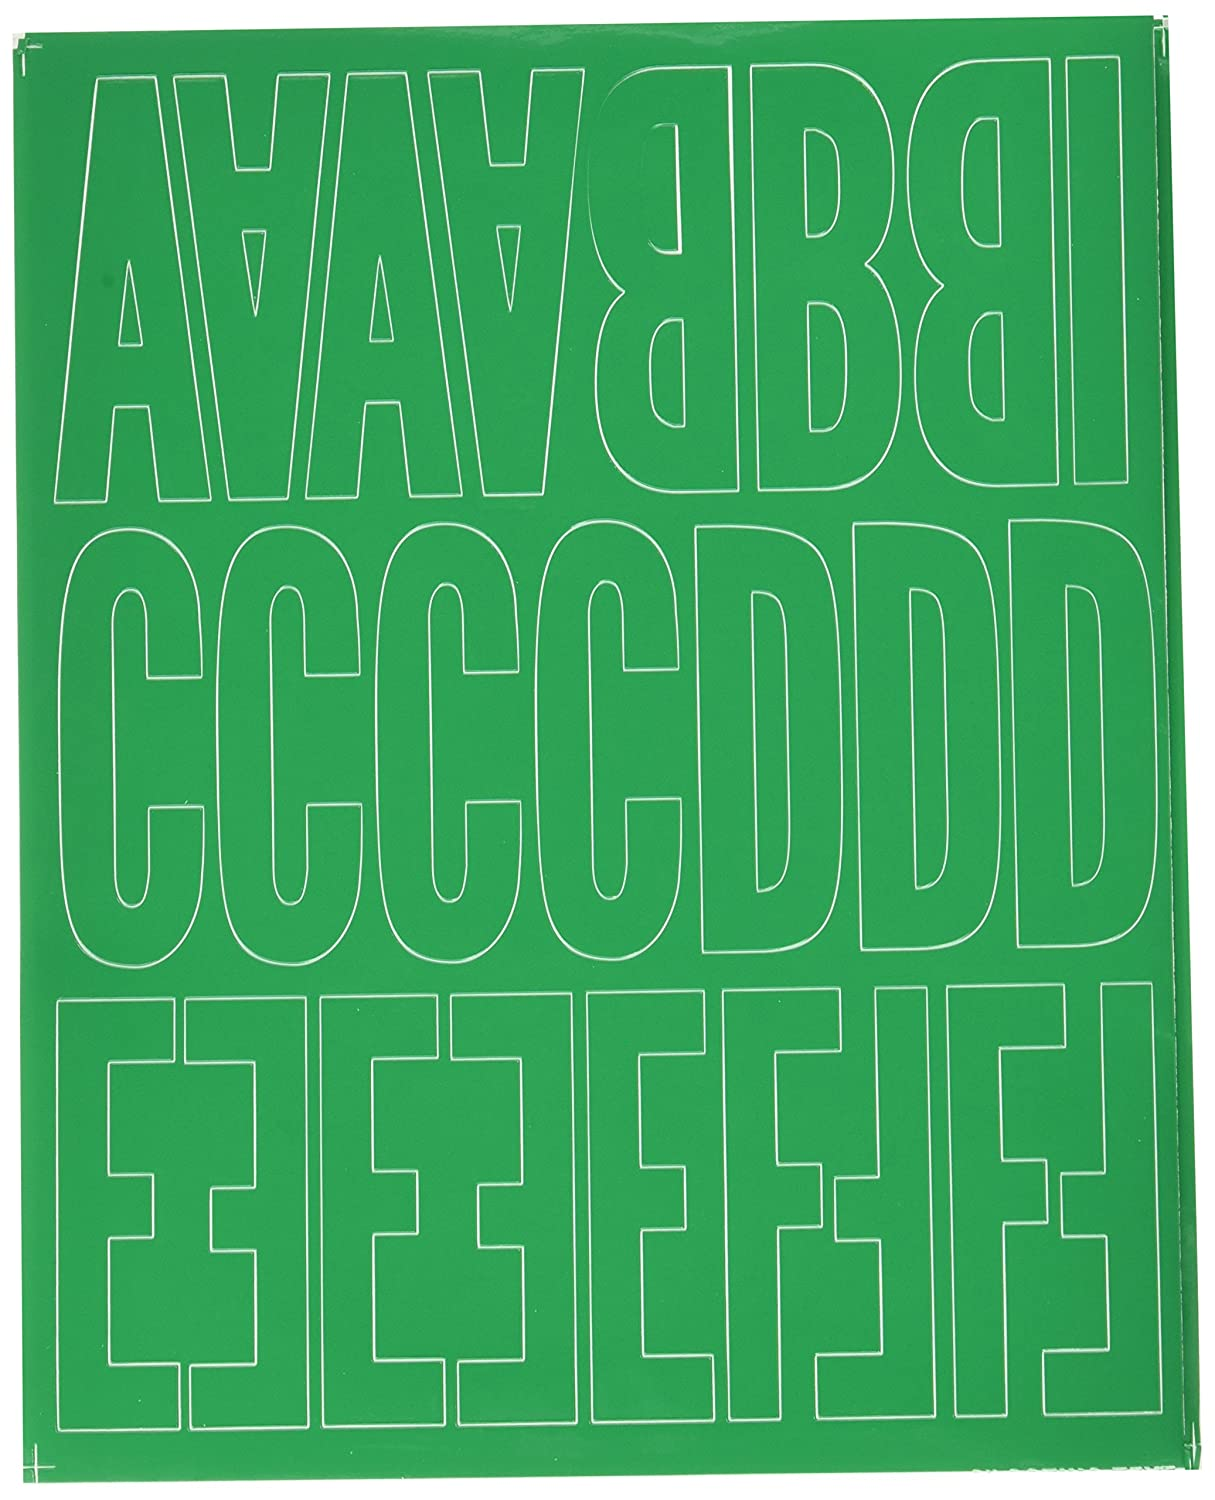 Graphic Products Permanent Adhesive Vinyl Letters and Numbers (160 /pkg), 3, Green 3 D3216-GREEN